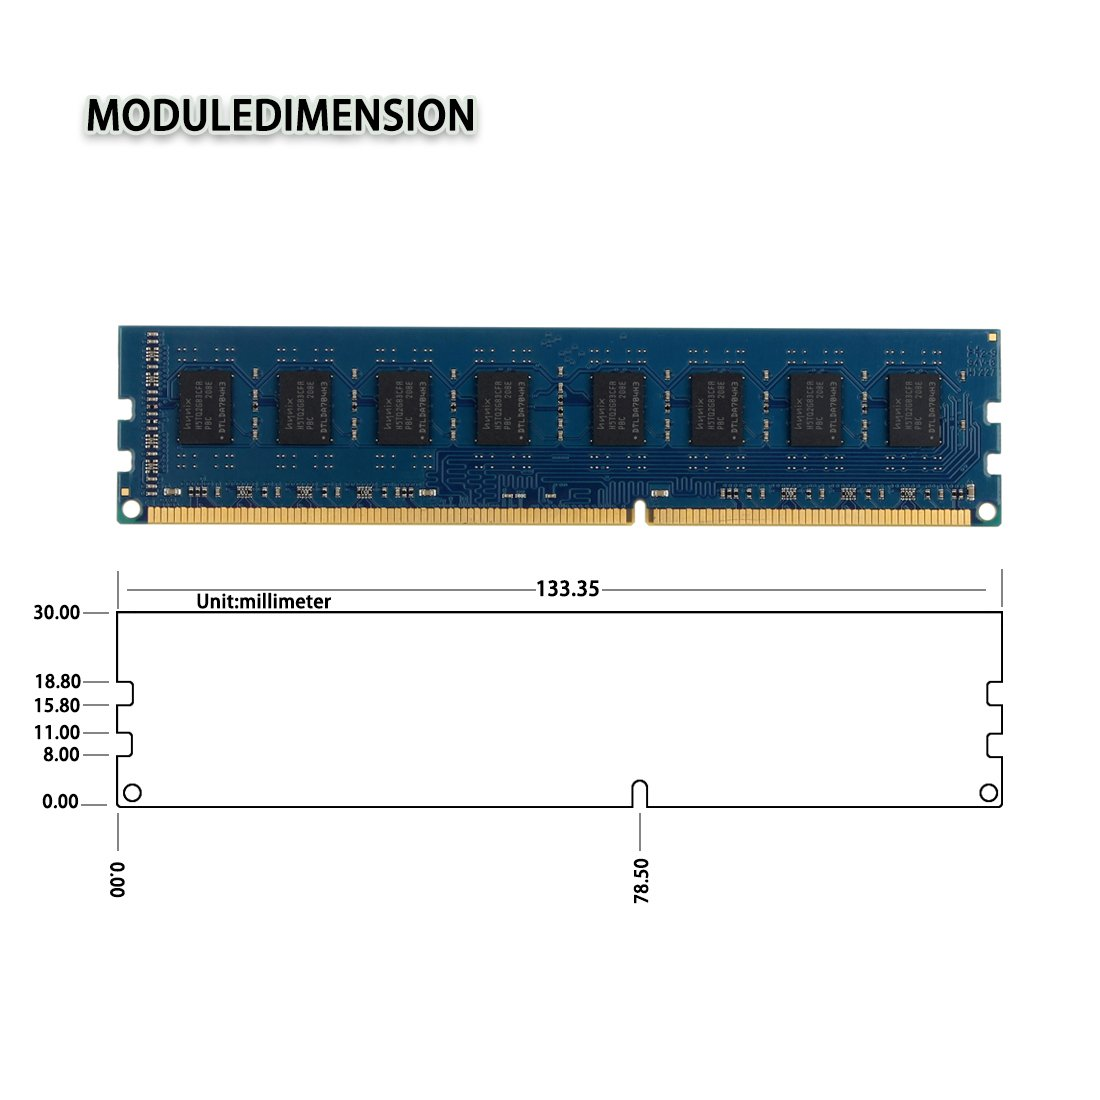 DUOMEIQI 8GB Kit (2 X 4GB) DDR3 1333MHz DIMM PC3-10600 PC3-10600U 2RX8 CL9  1 5v (240 PIN) Non-ECC Unbuffered Desktop Memory RAM Module Compatible with